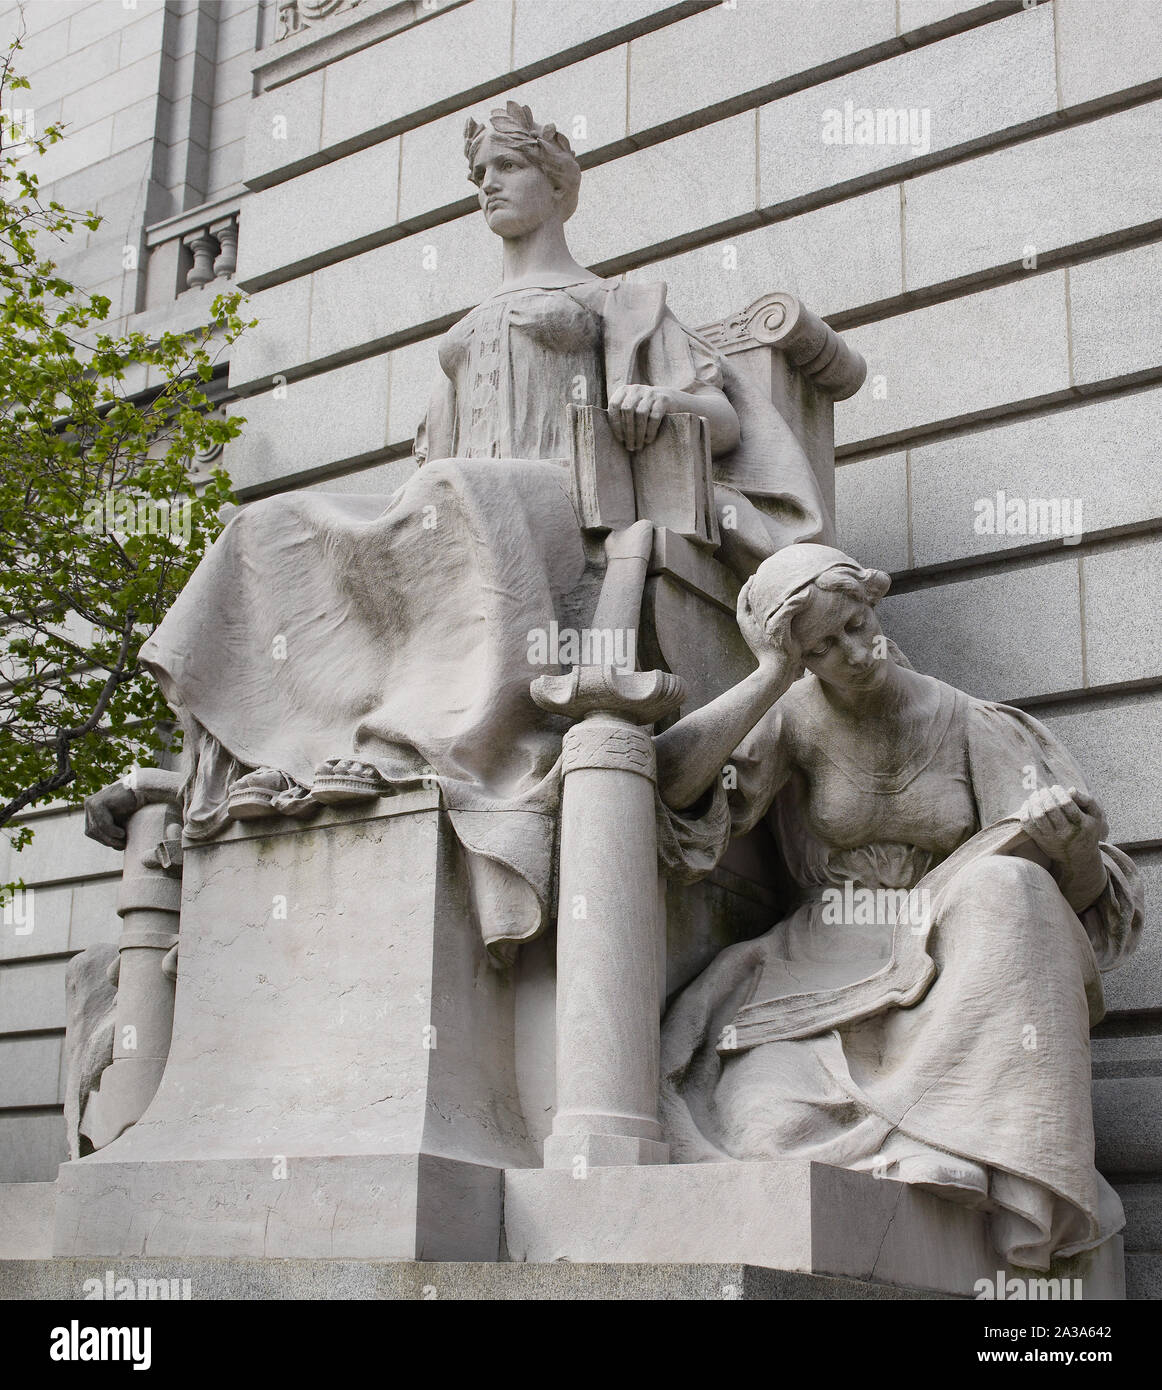 Sculpture Providence as Independent Thought, Flanked by Industry and Education, by John Massey Rhind at the John O. Pastore Federal Building in Providence, Rhode Island Stock Photo